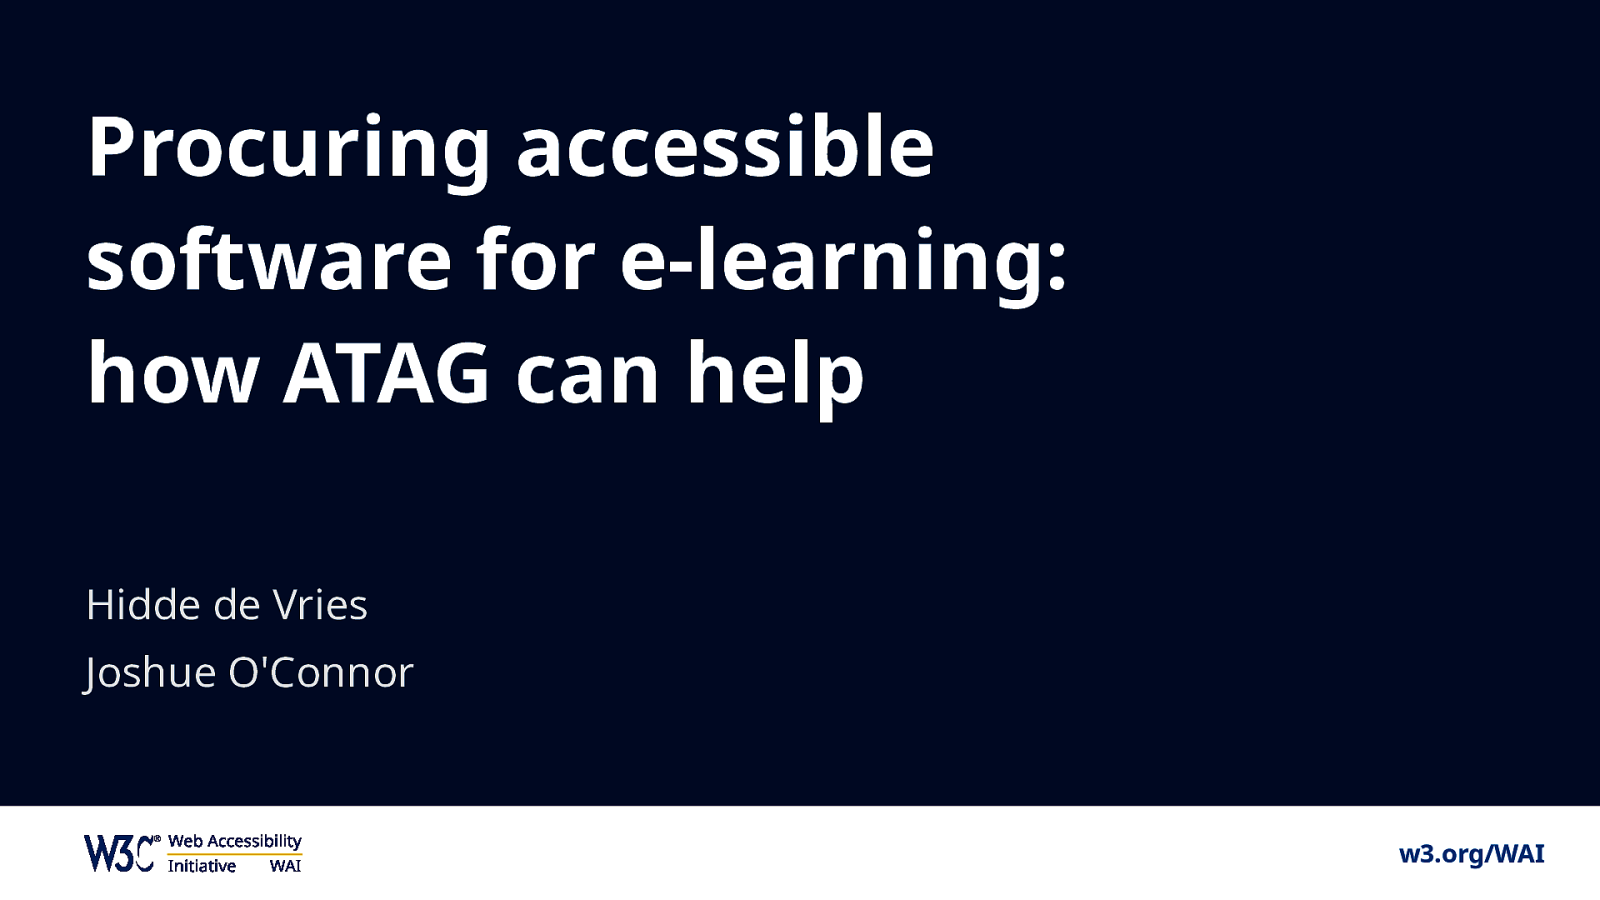 Procuring accessible software for e-learning: how ATAG can help